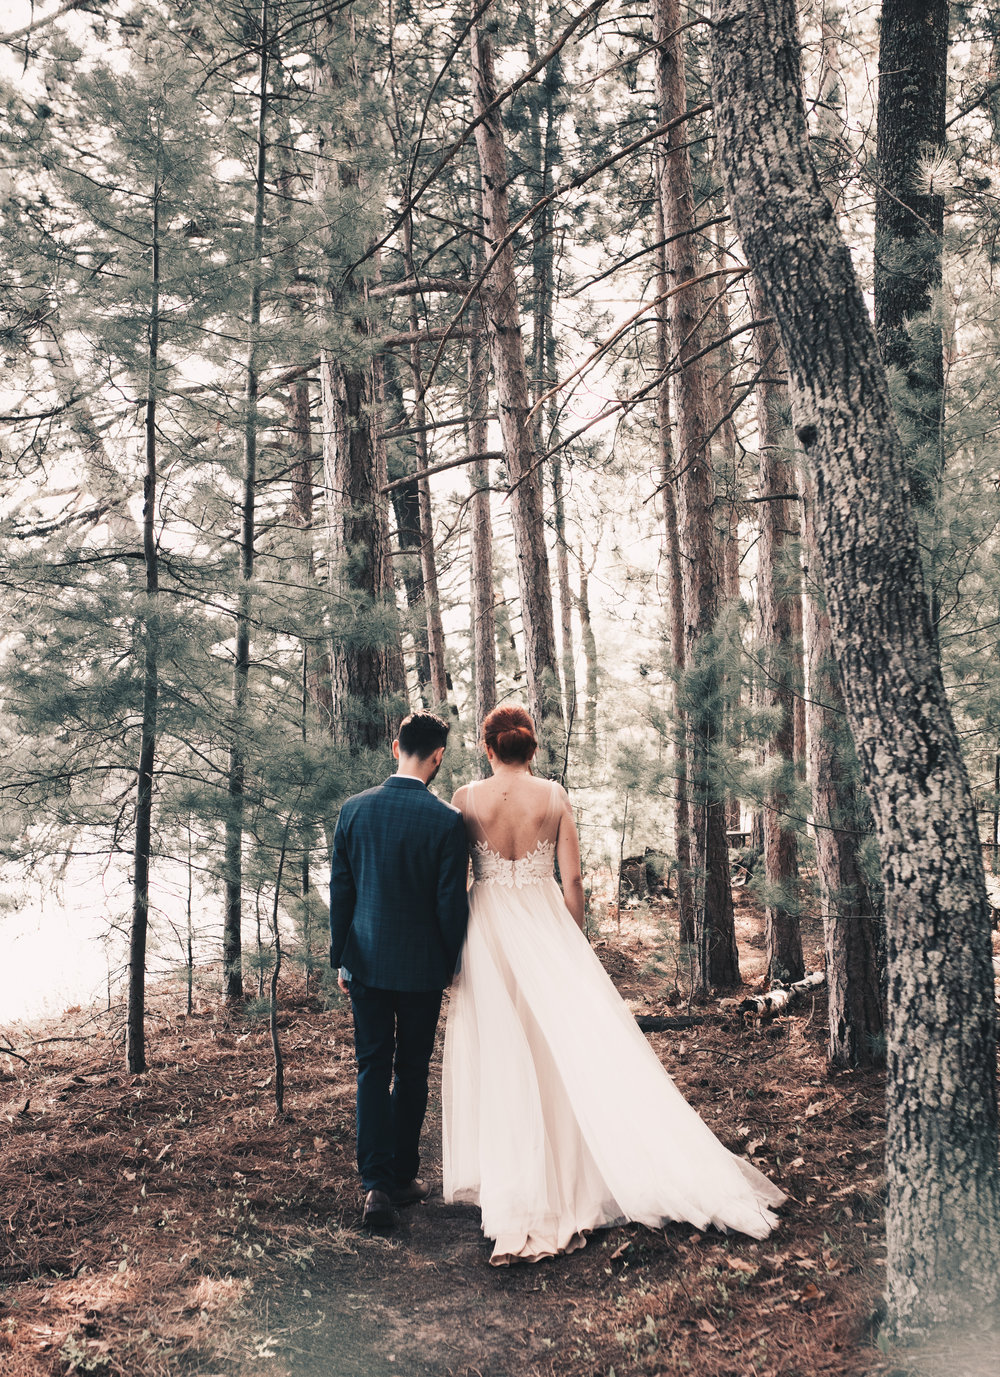 Rustic Woodsy Wedding, Wisconsin Wedding Photographer, Wisconsin Wedding, Beautiful Outdoor Wedding, Outdoor Woodsy Ceremony